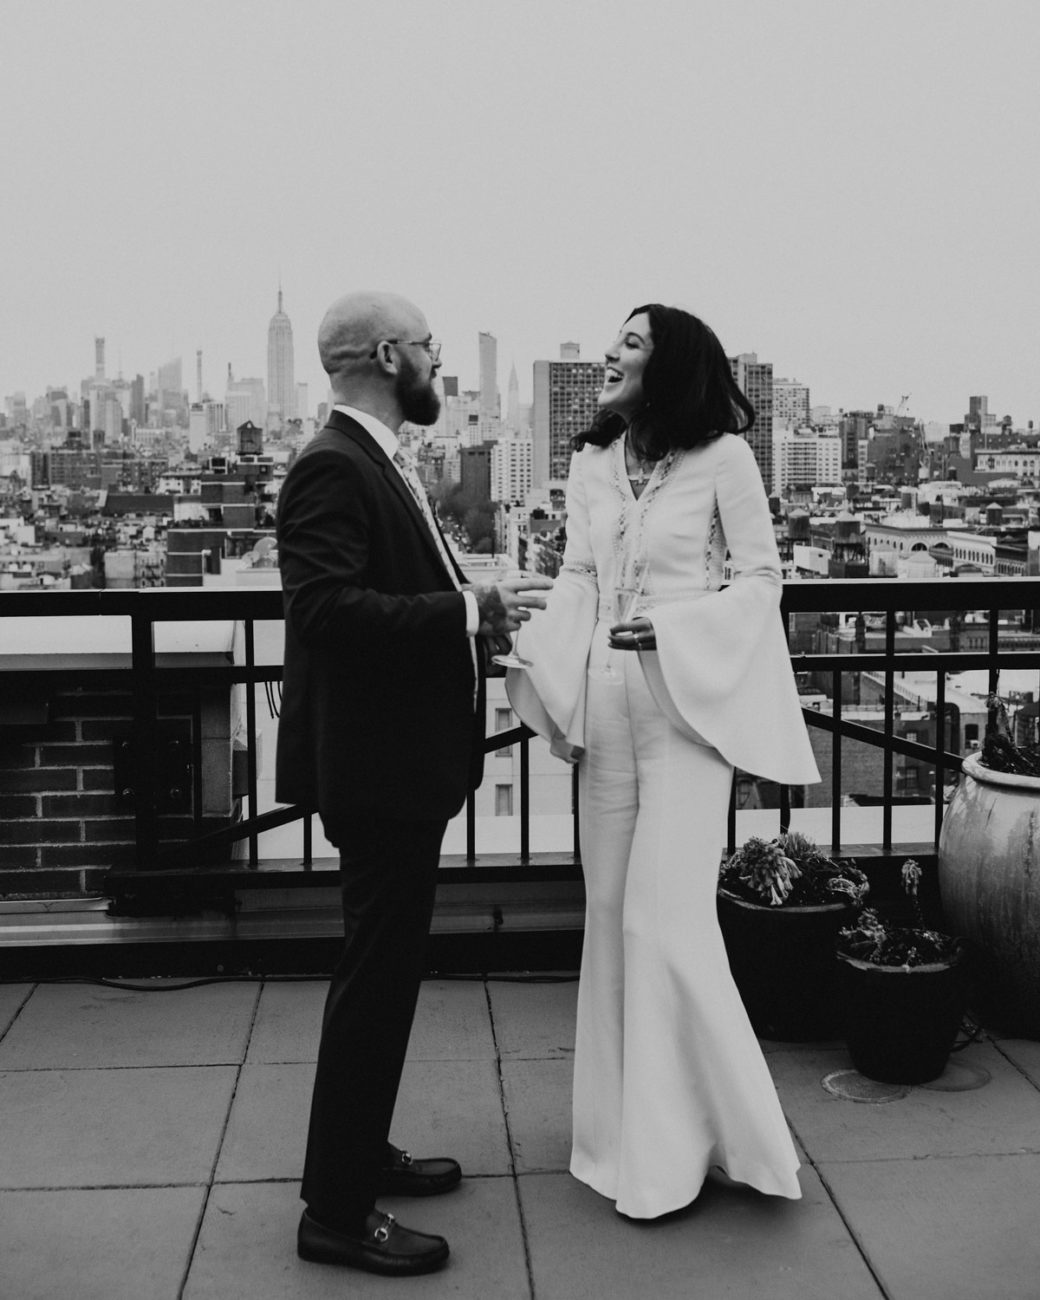 Rata and Ken on the rooftop with NYC skyline in the background after their city hall wedding